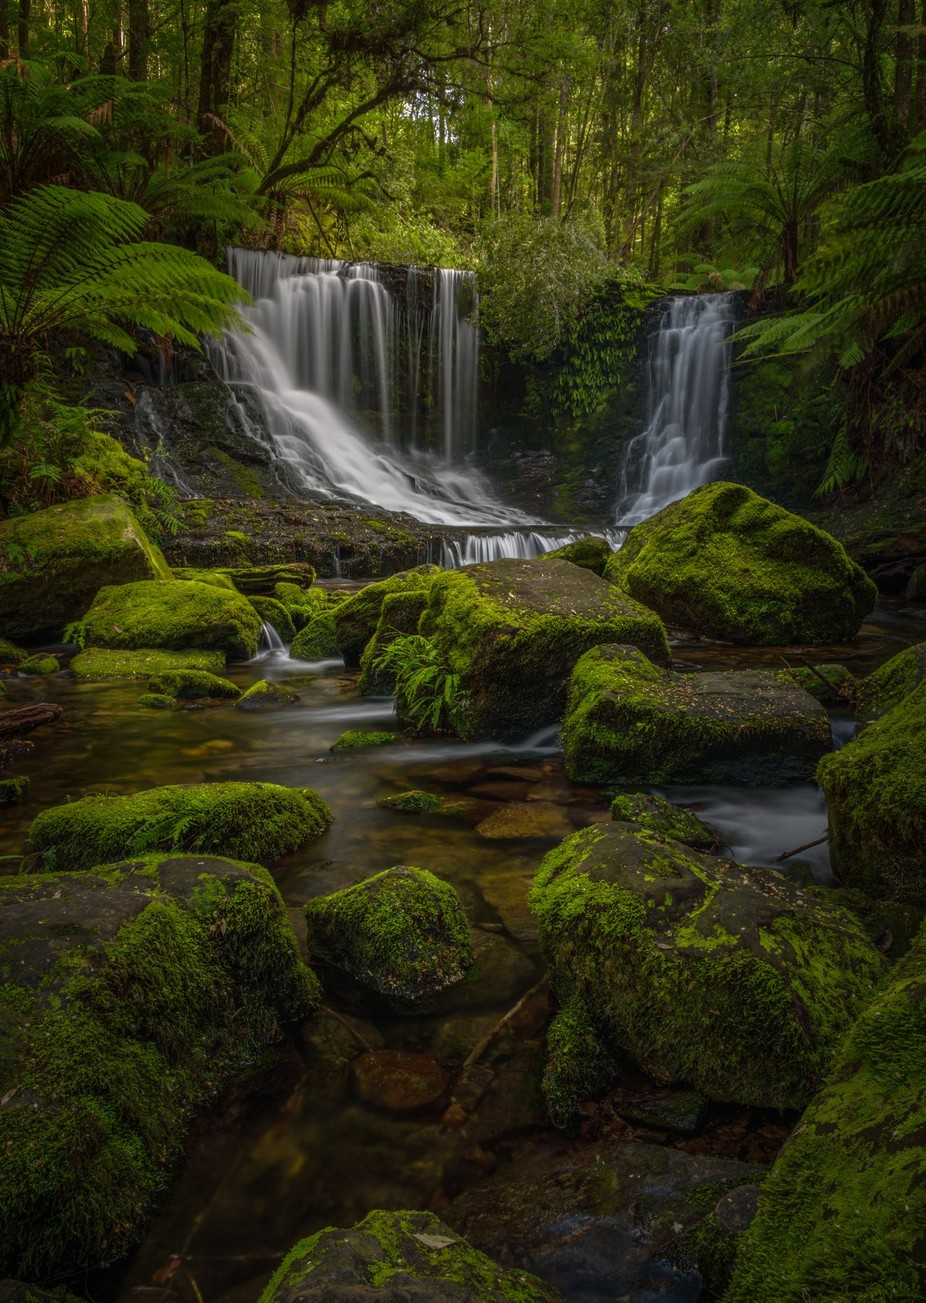 Falls & Ferns by jamierichey - Zen Photo Contest